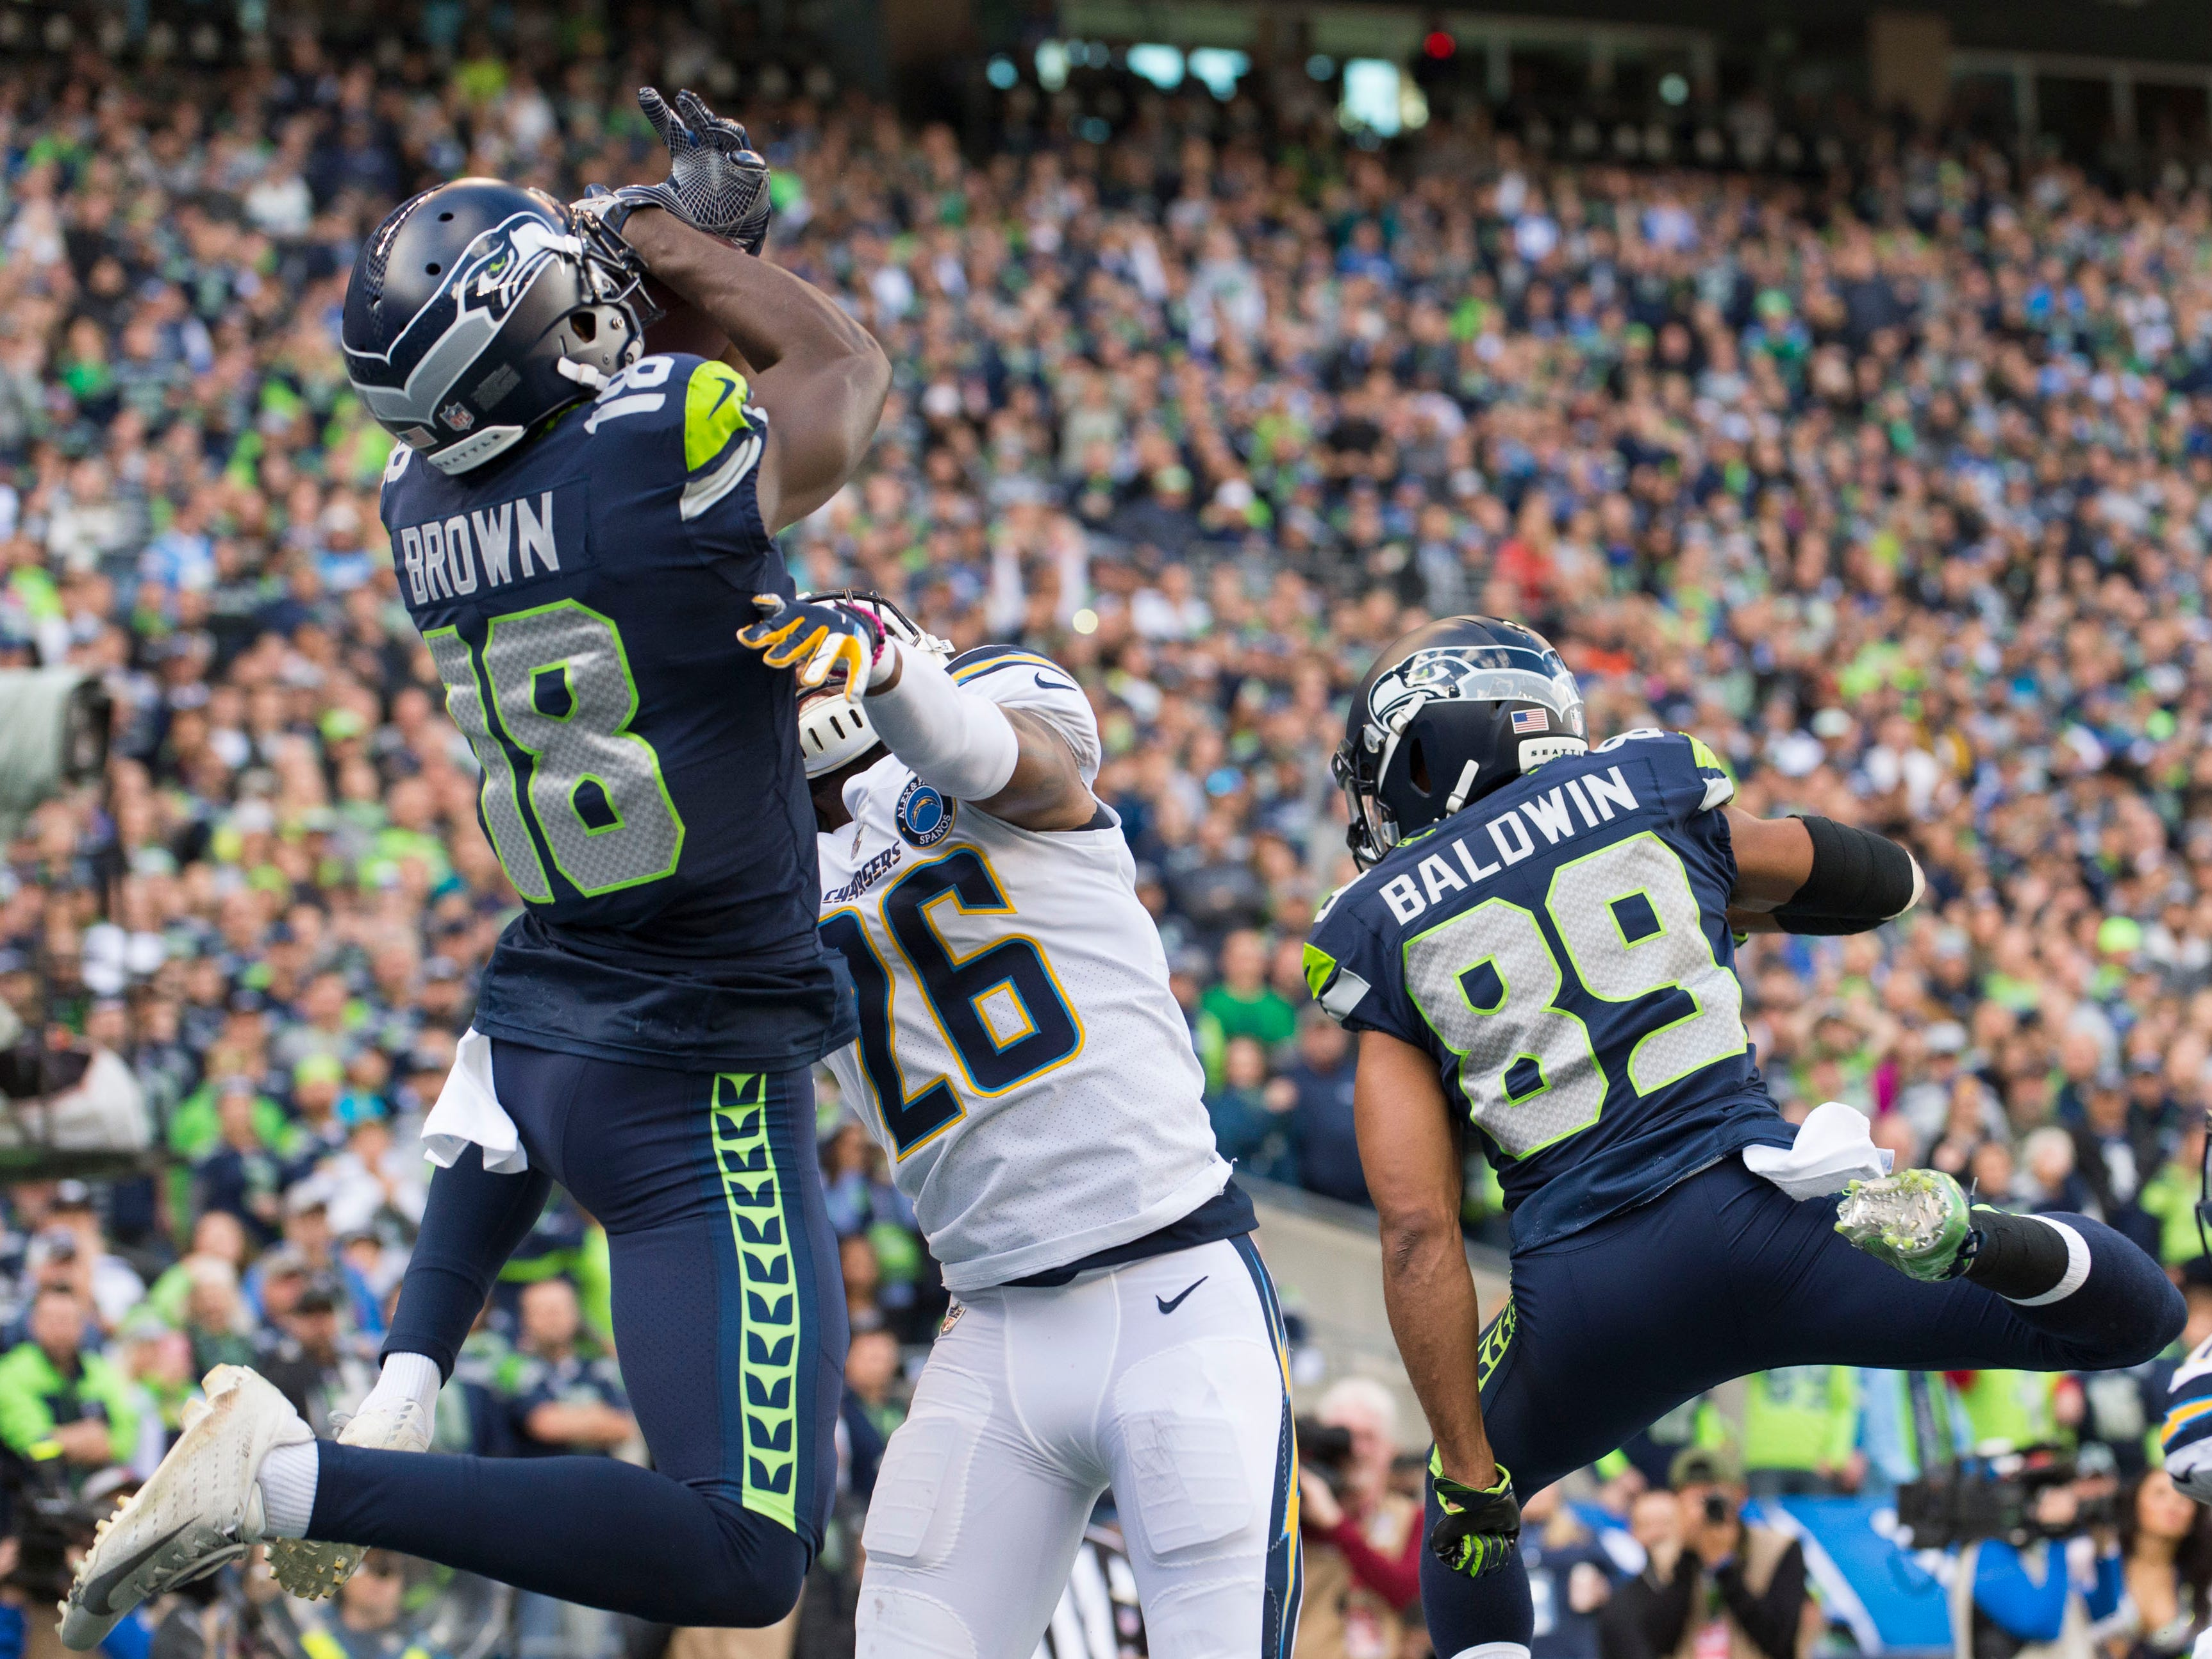 Seattle Seahawks wide receiver Jaron Brown (18) catches a touchdown pass against the Los Angeles Chargers during the first half at CenturyLink Field.